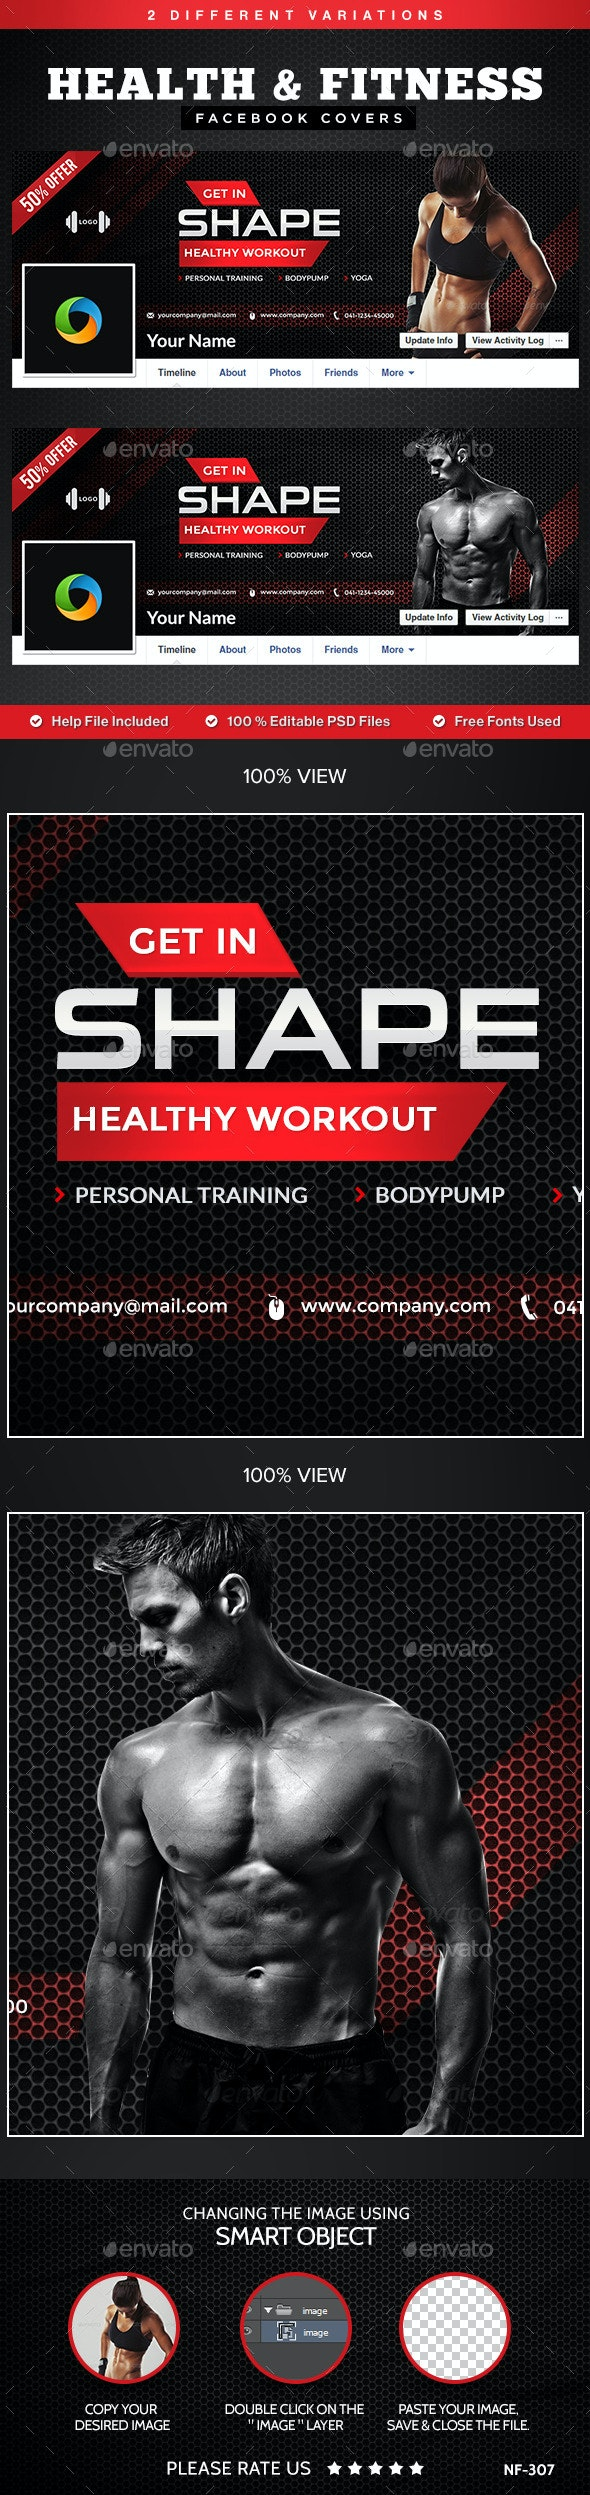 Health & Fitness Facebook Covers - 2 Designs - Facebook Timeline Covers Social Media